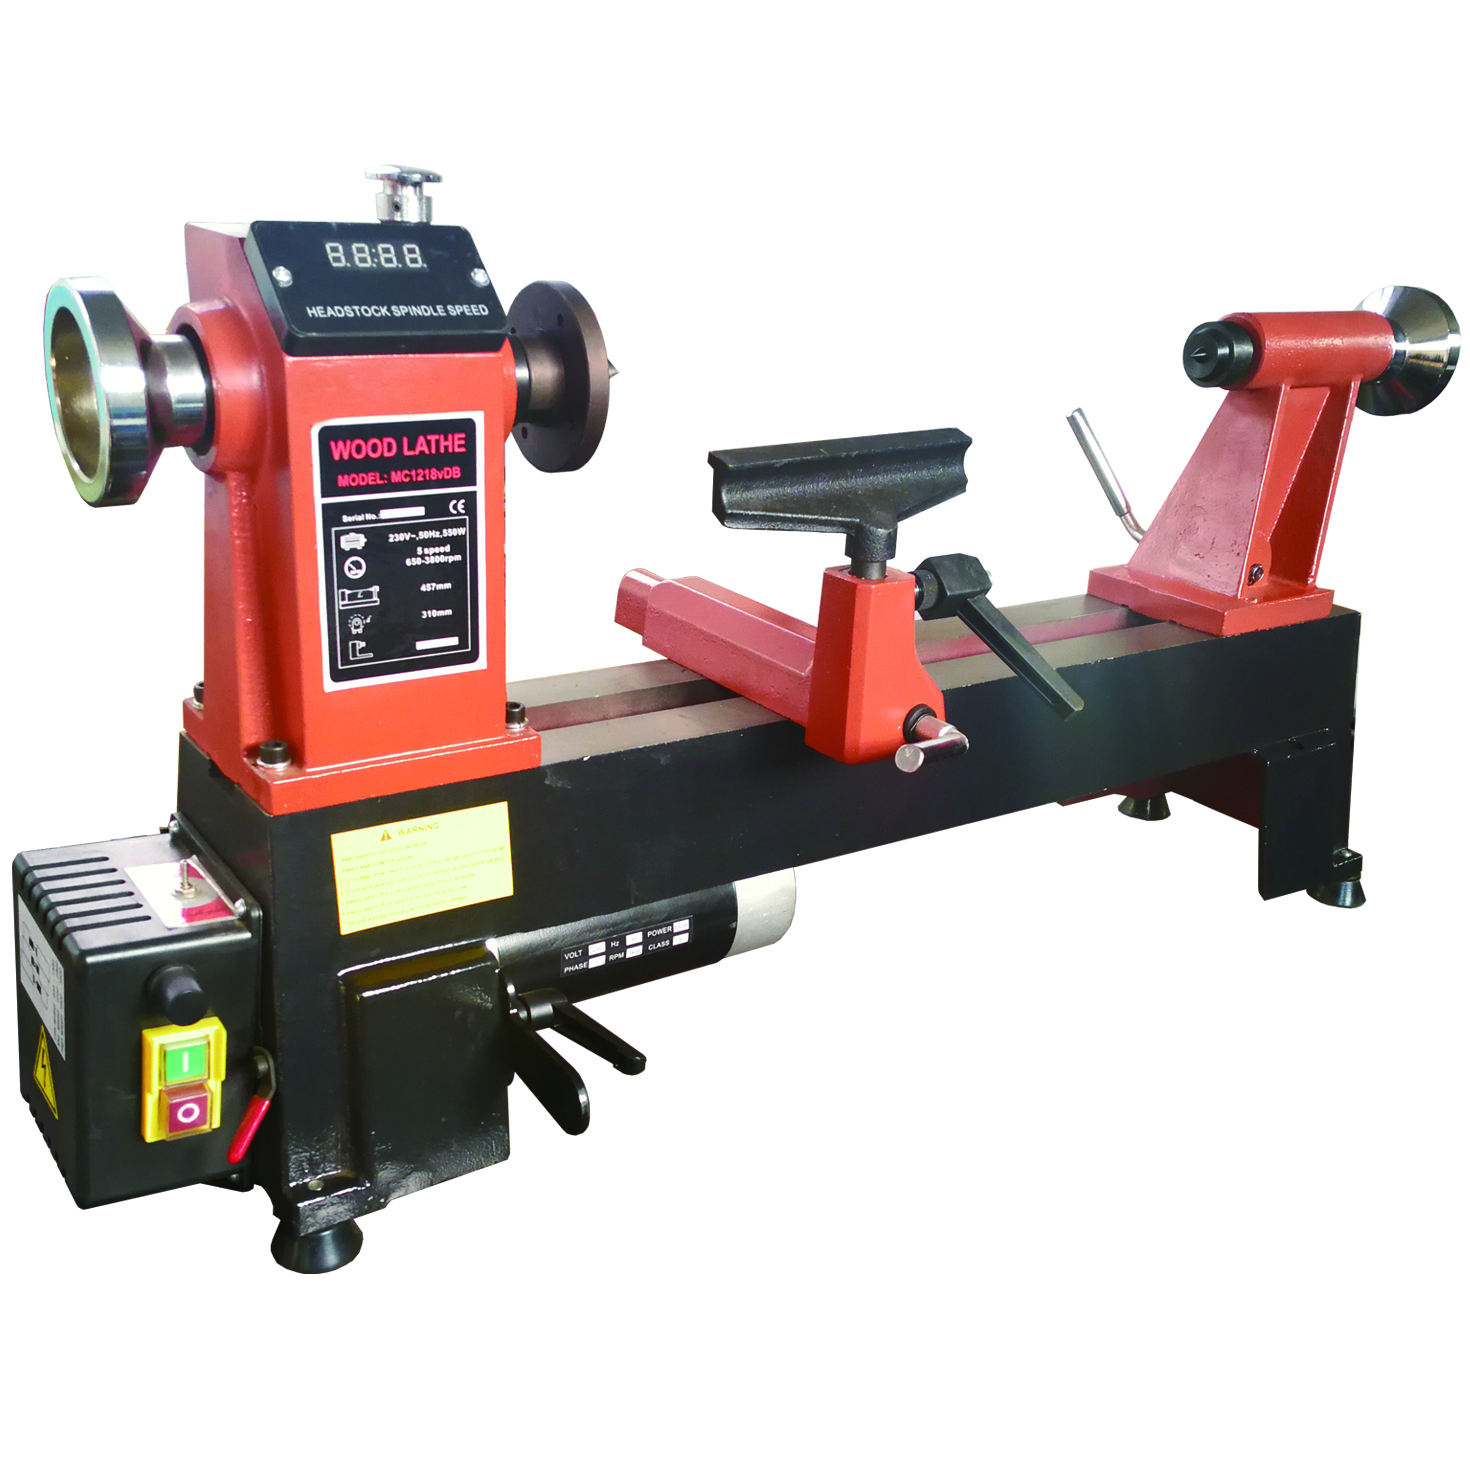 Top standard 220V/550w used automatic wood copying lathe machine for sale